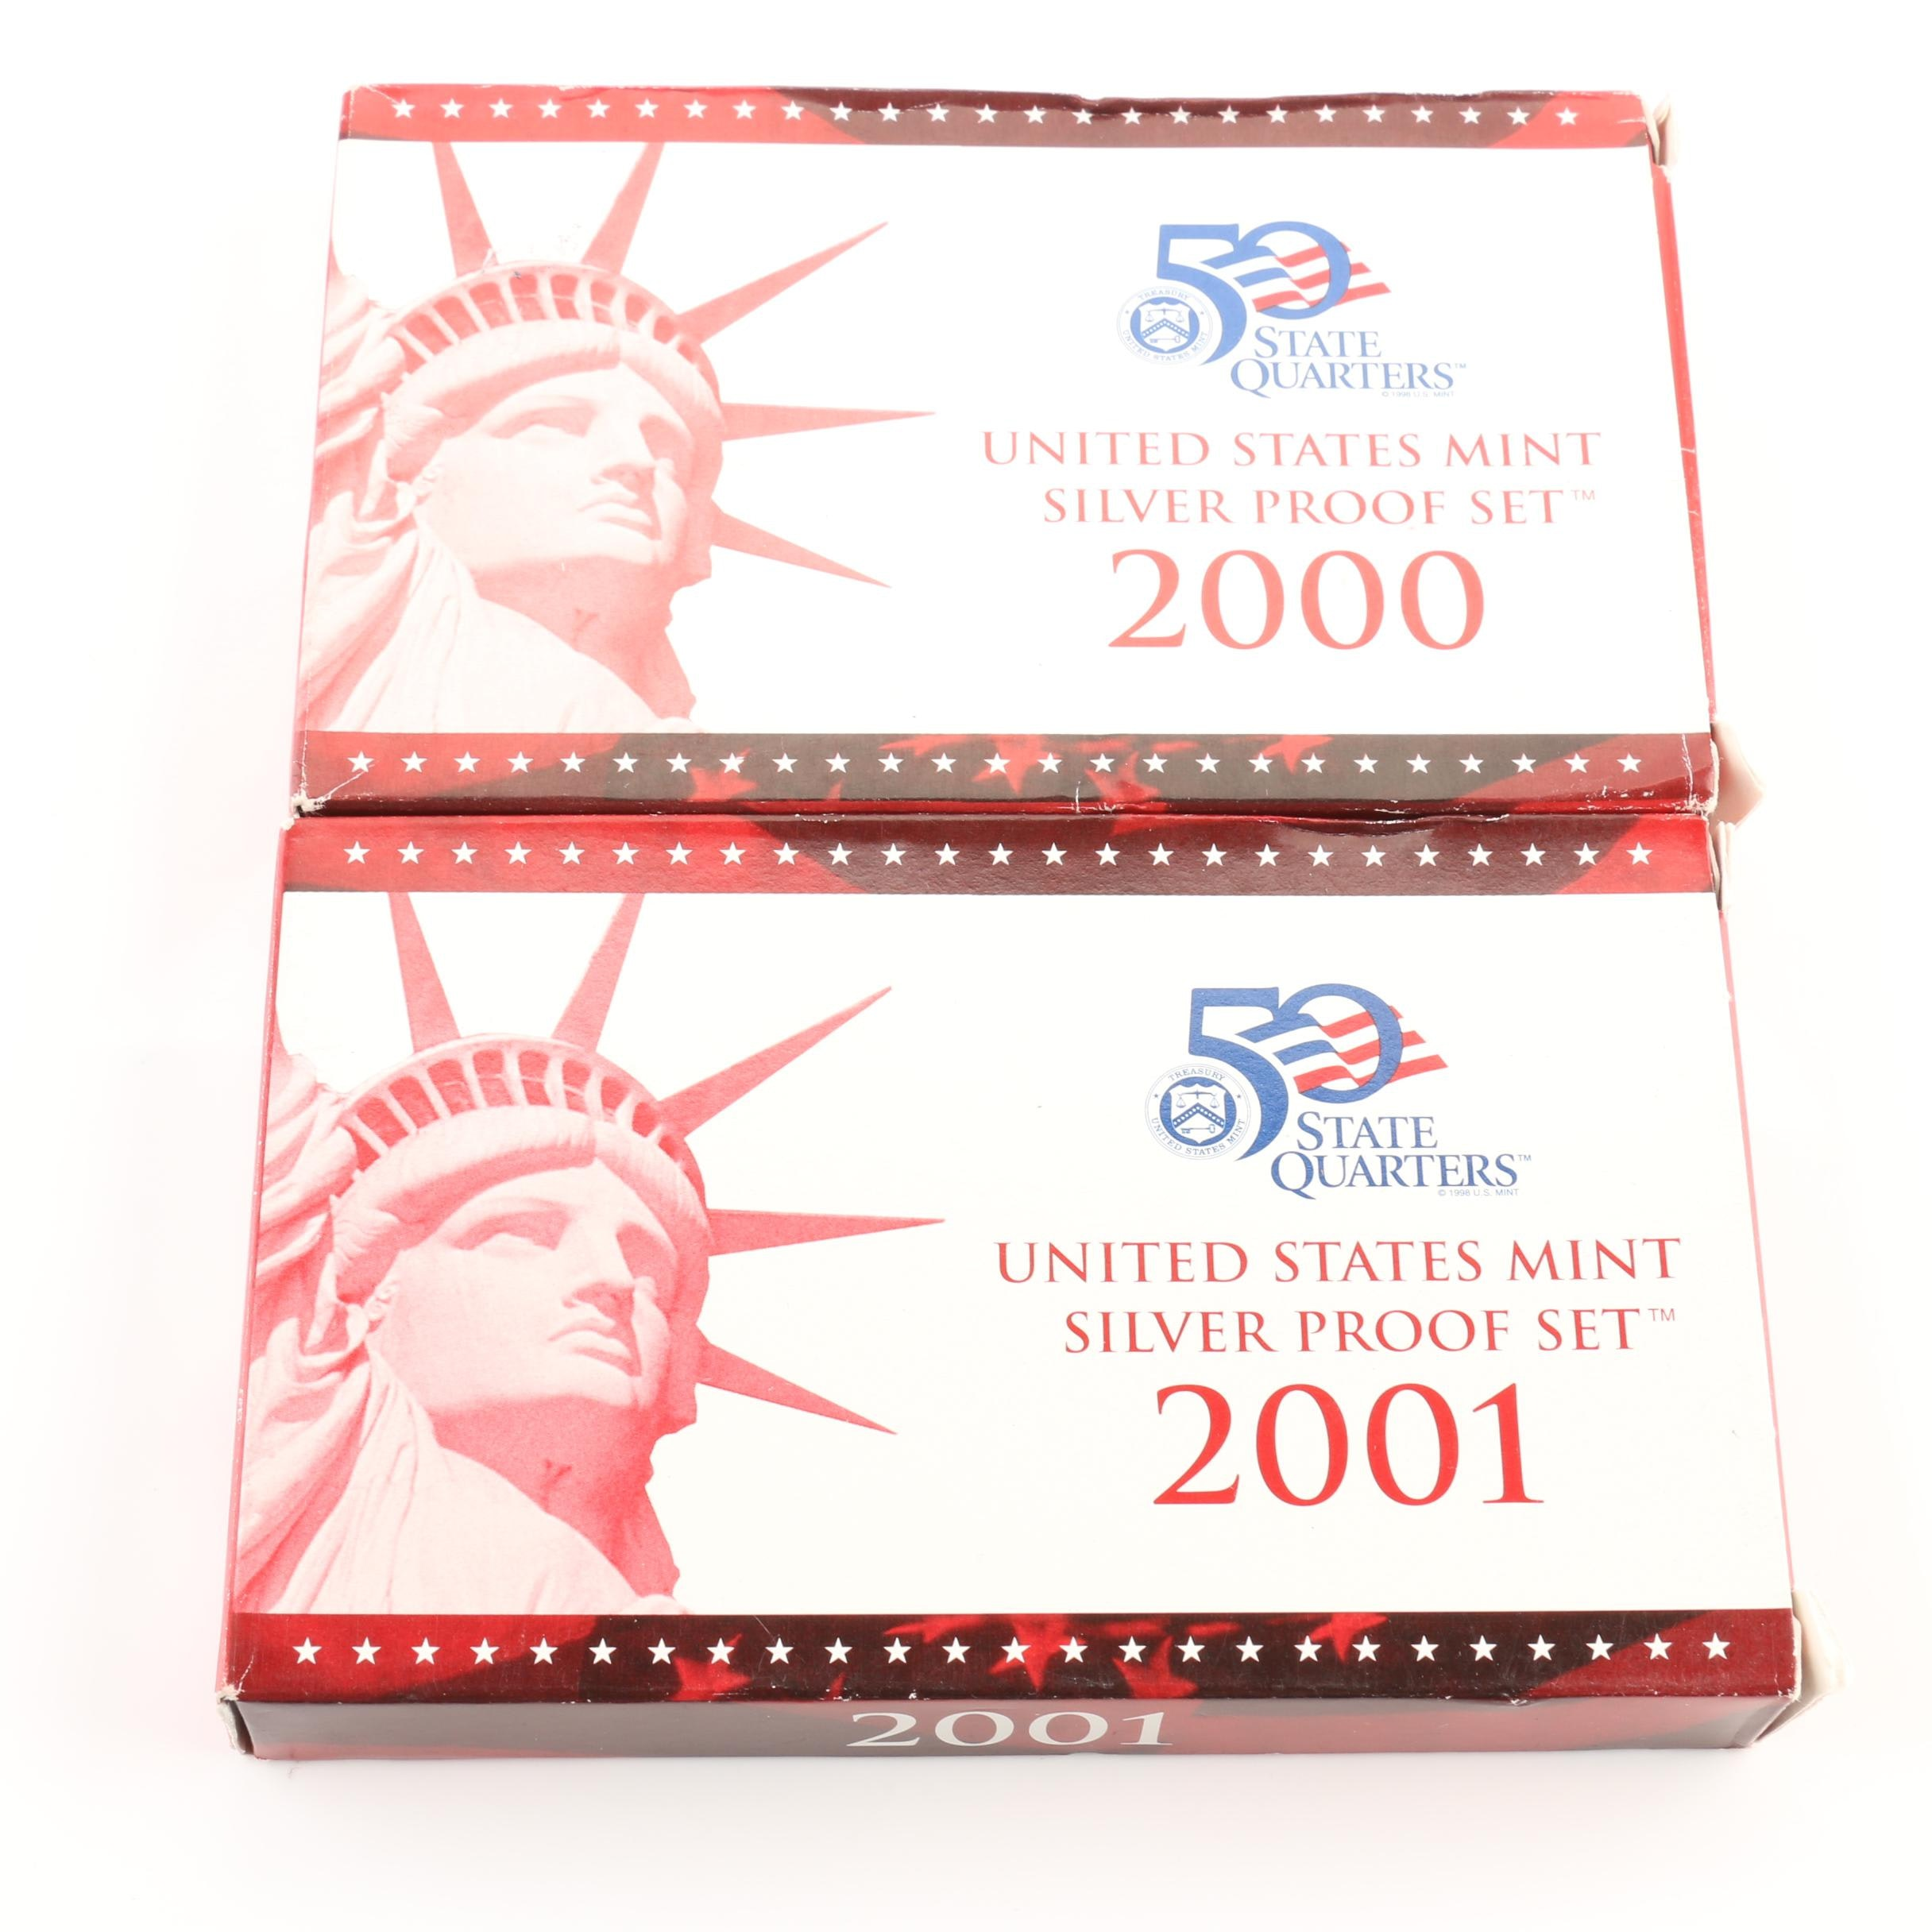 2000 and 2001 United States Mint Silver Proof Sets